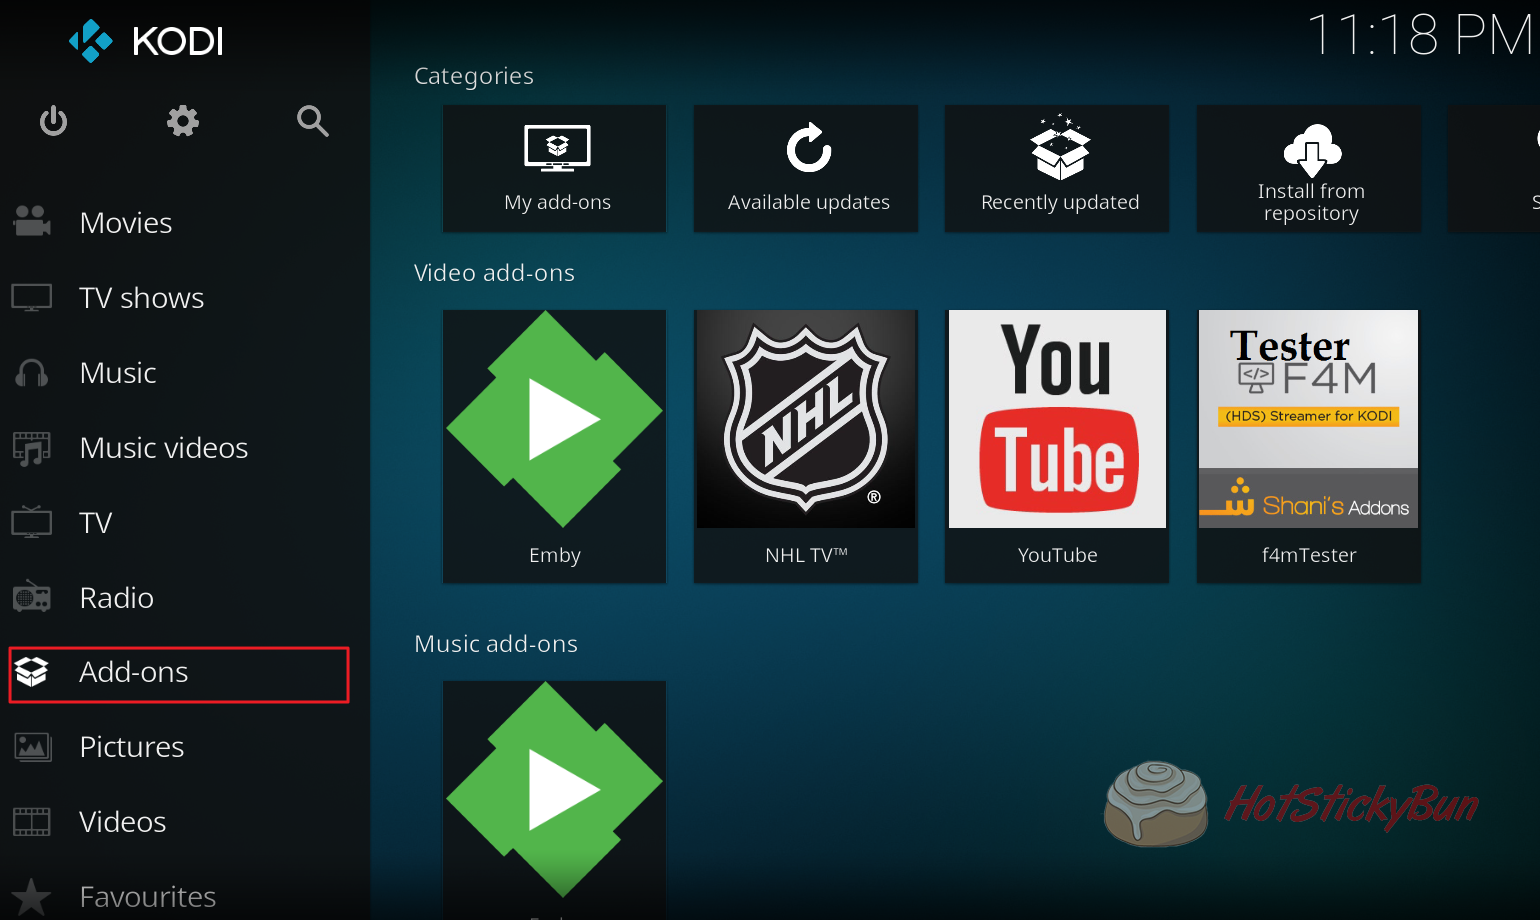 Adding Addons in Kodi